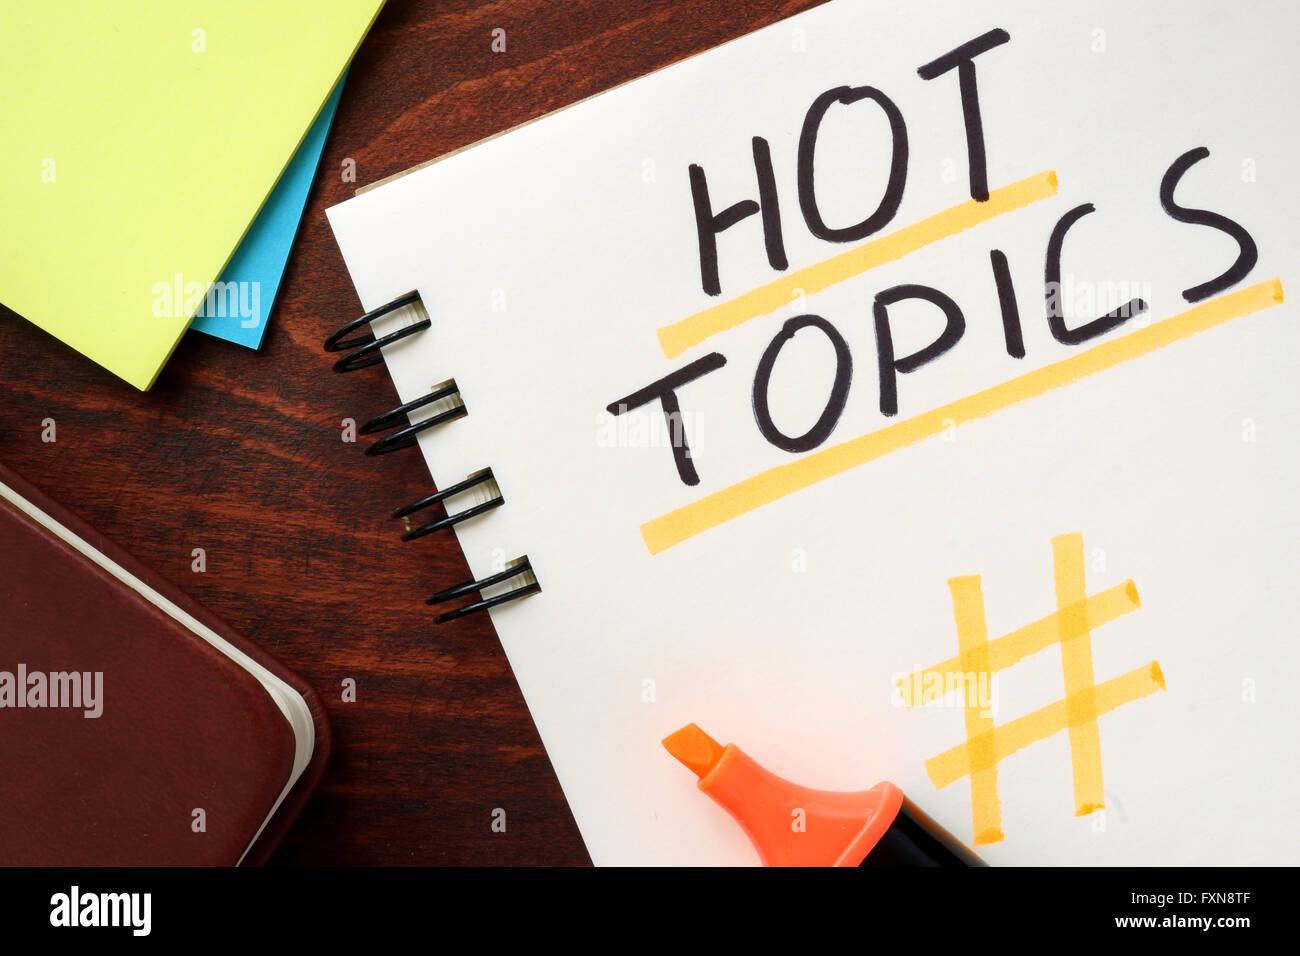 Hot Topics written in a notepad on a wooden background. - Stock Image